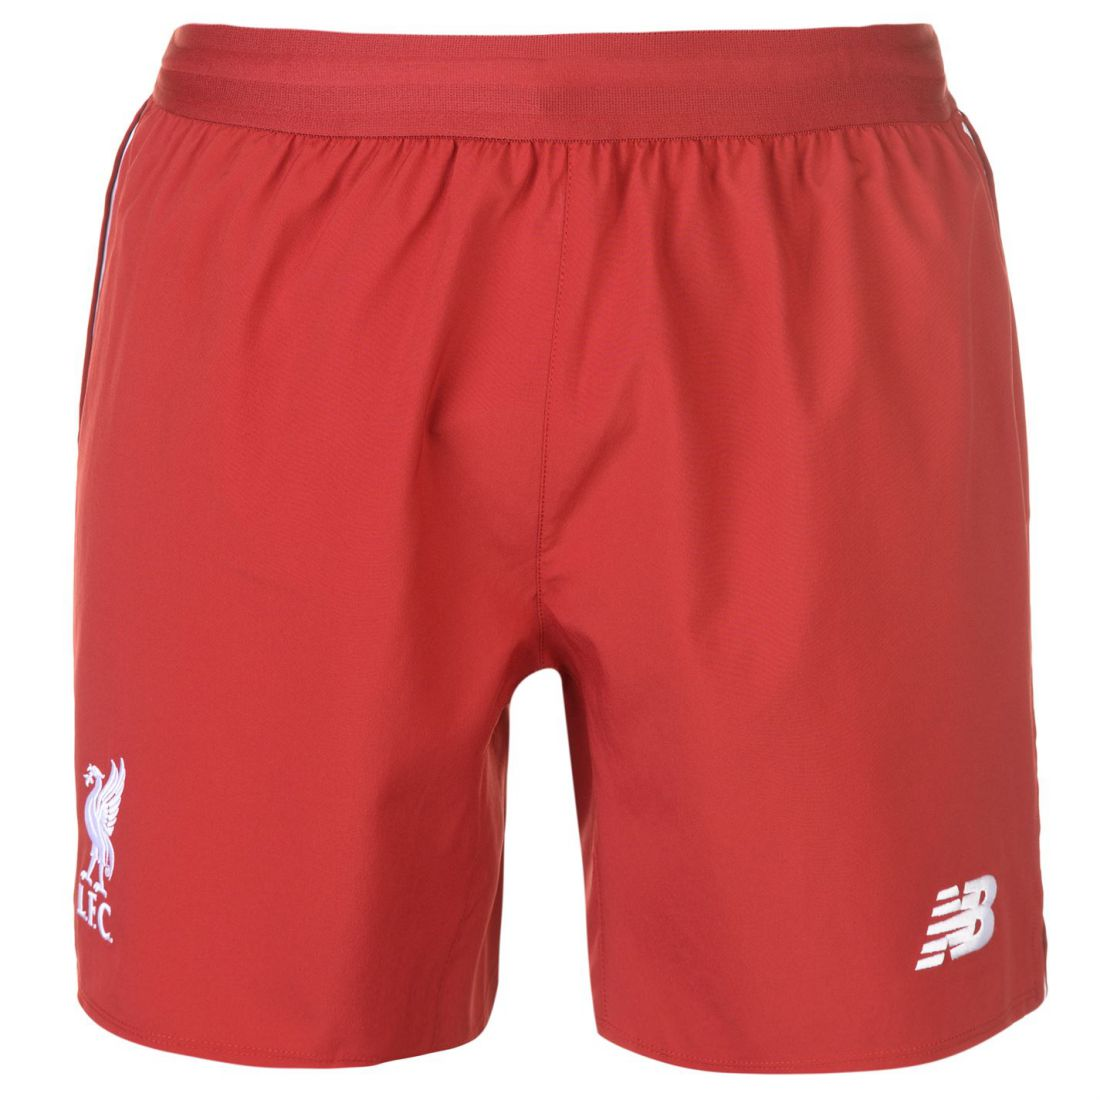 0c41c28b Details about New Balance Mens Liverpool Home Shorts 2018 2019 Domestic  Pants Trousers Bottoms